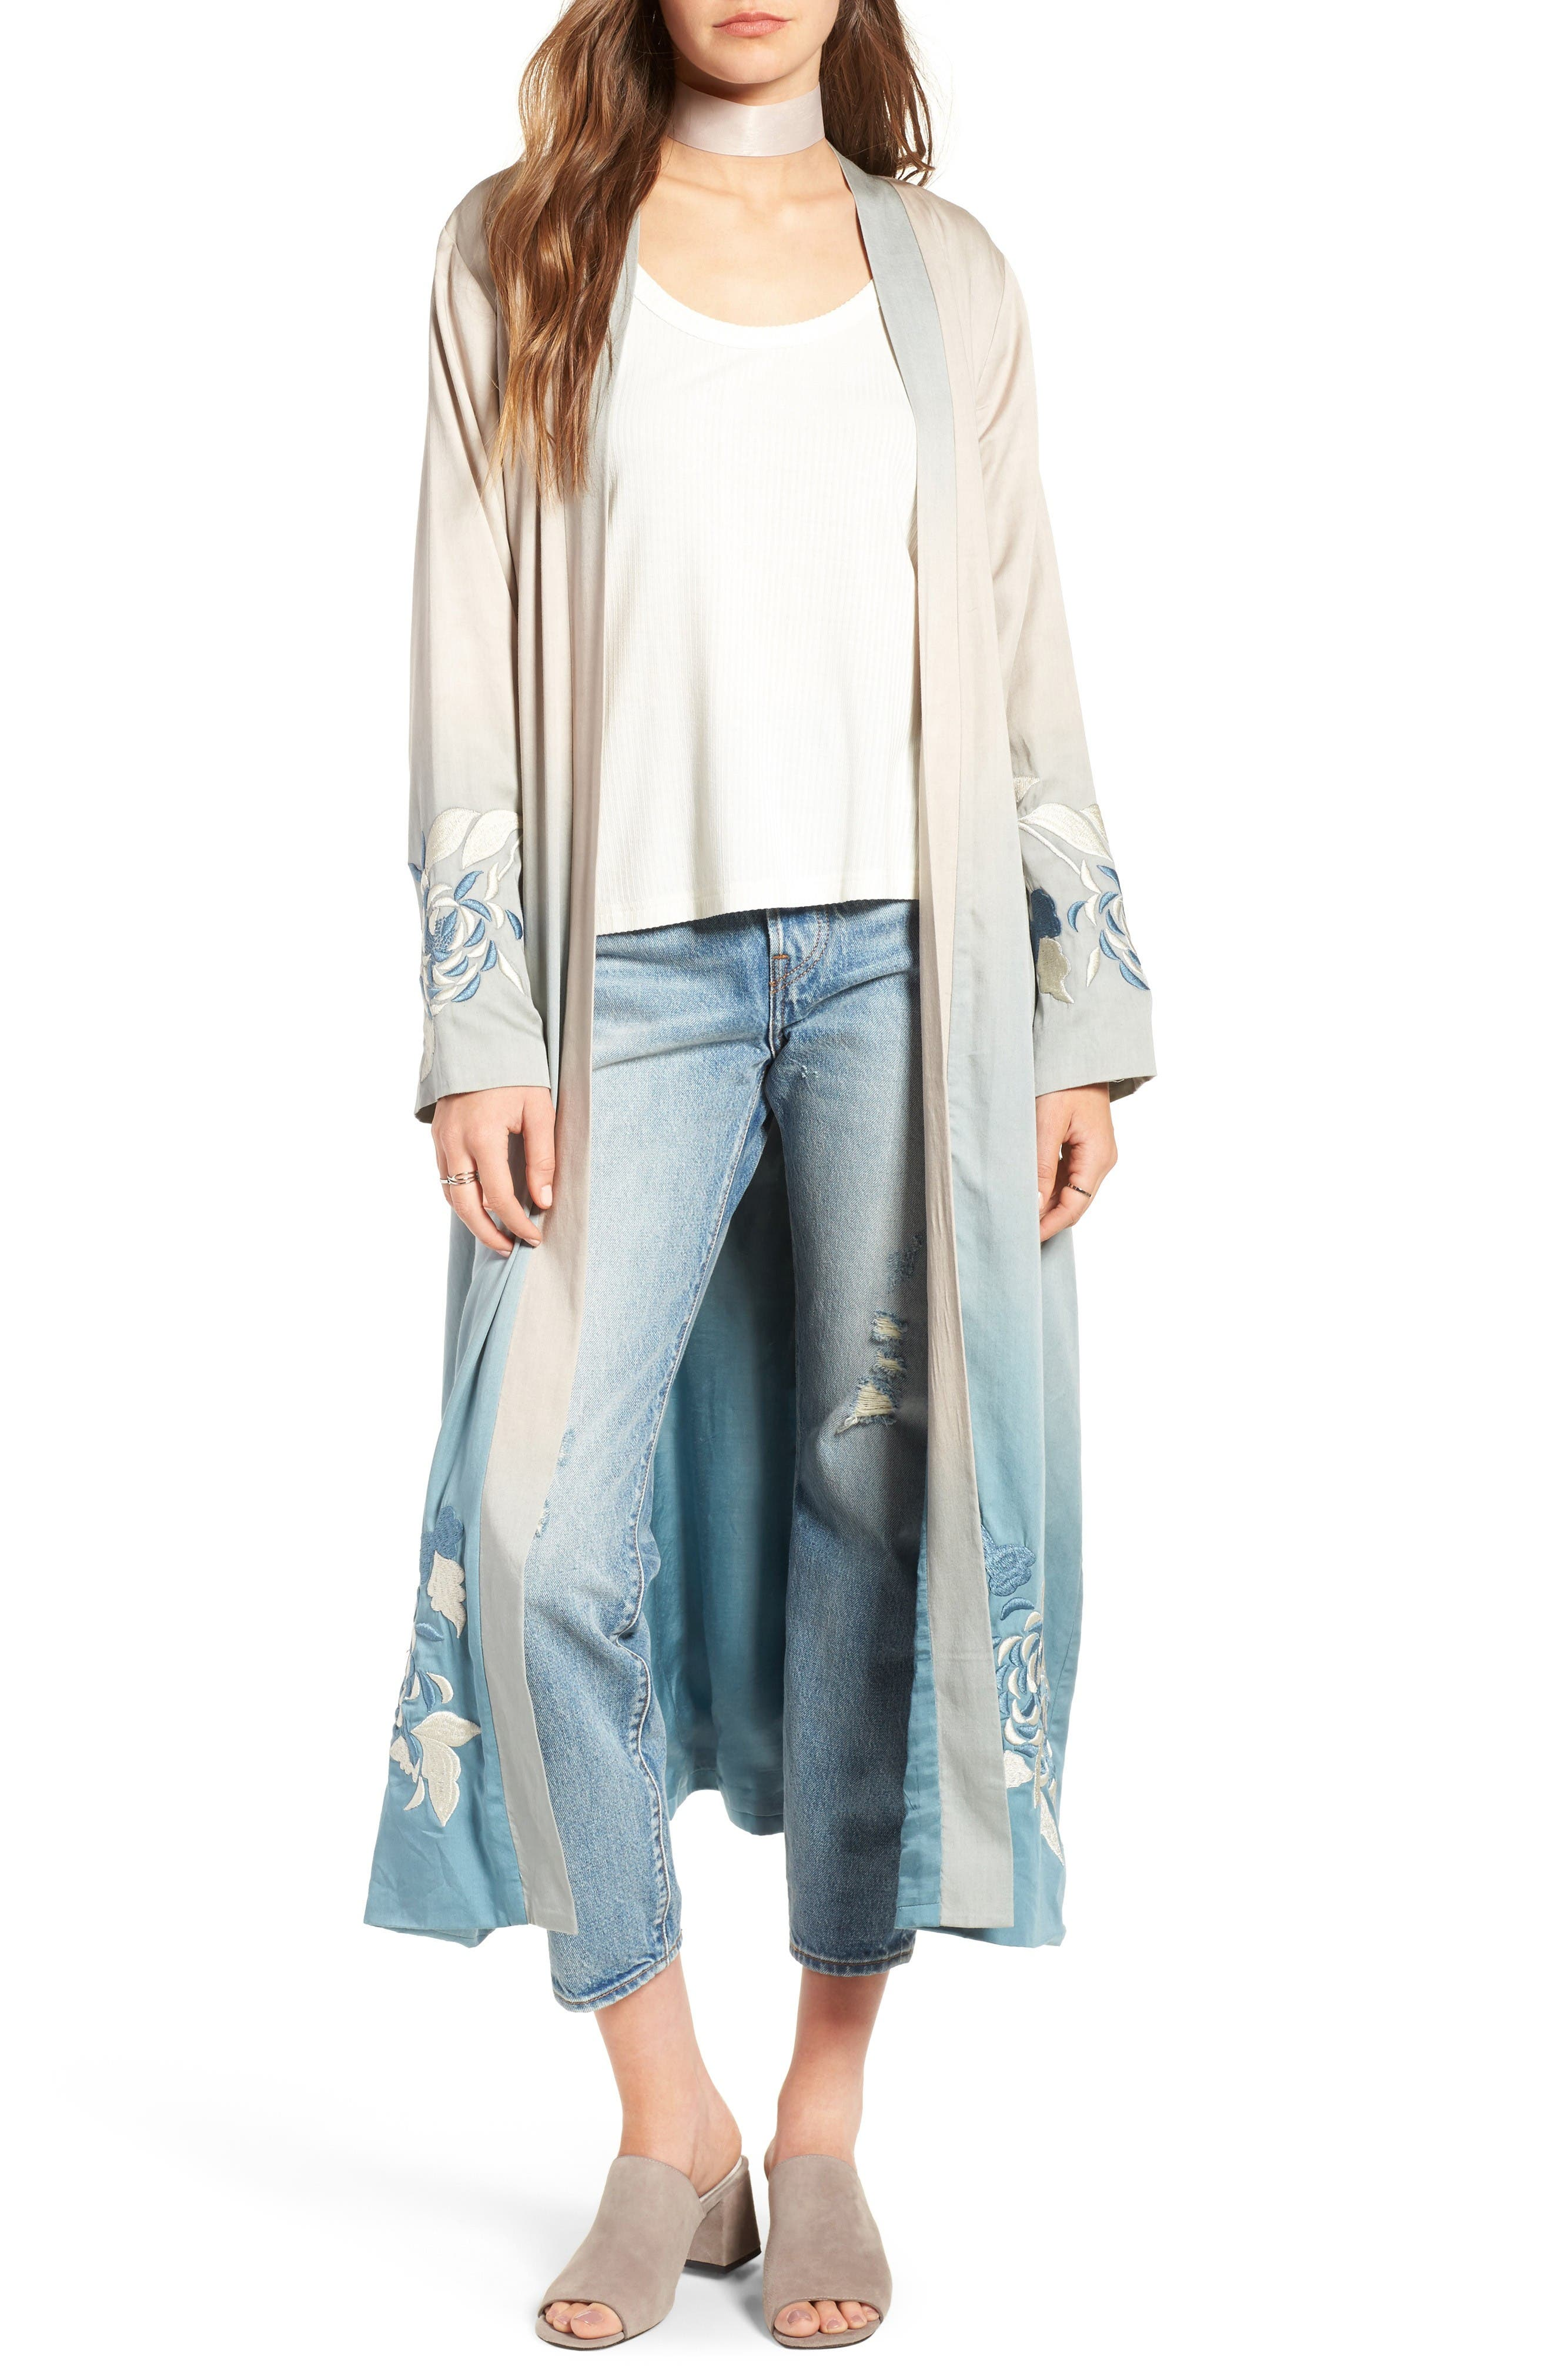 Majorelle Silversage Embroidered Duster Jacket